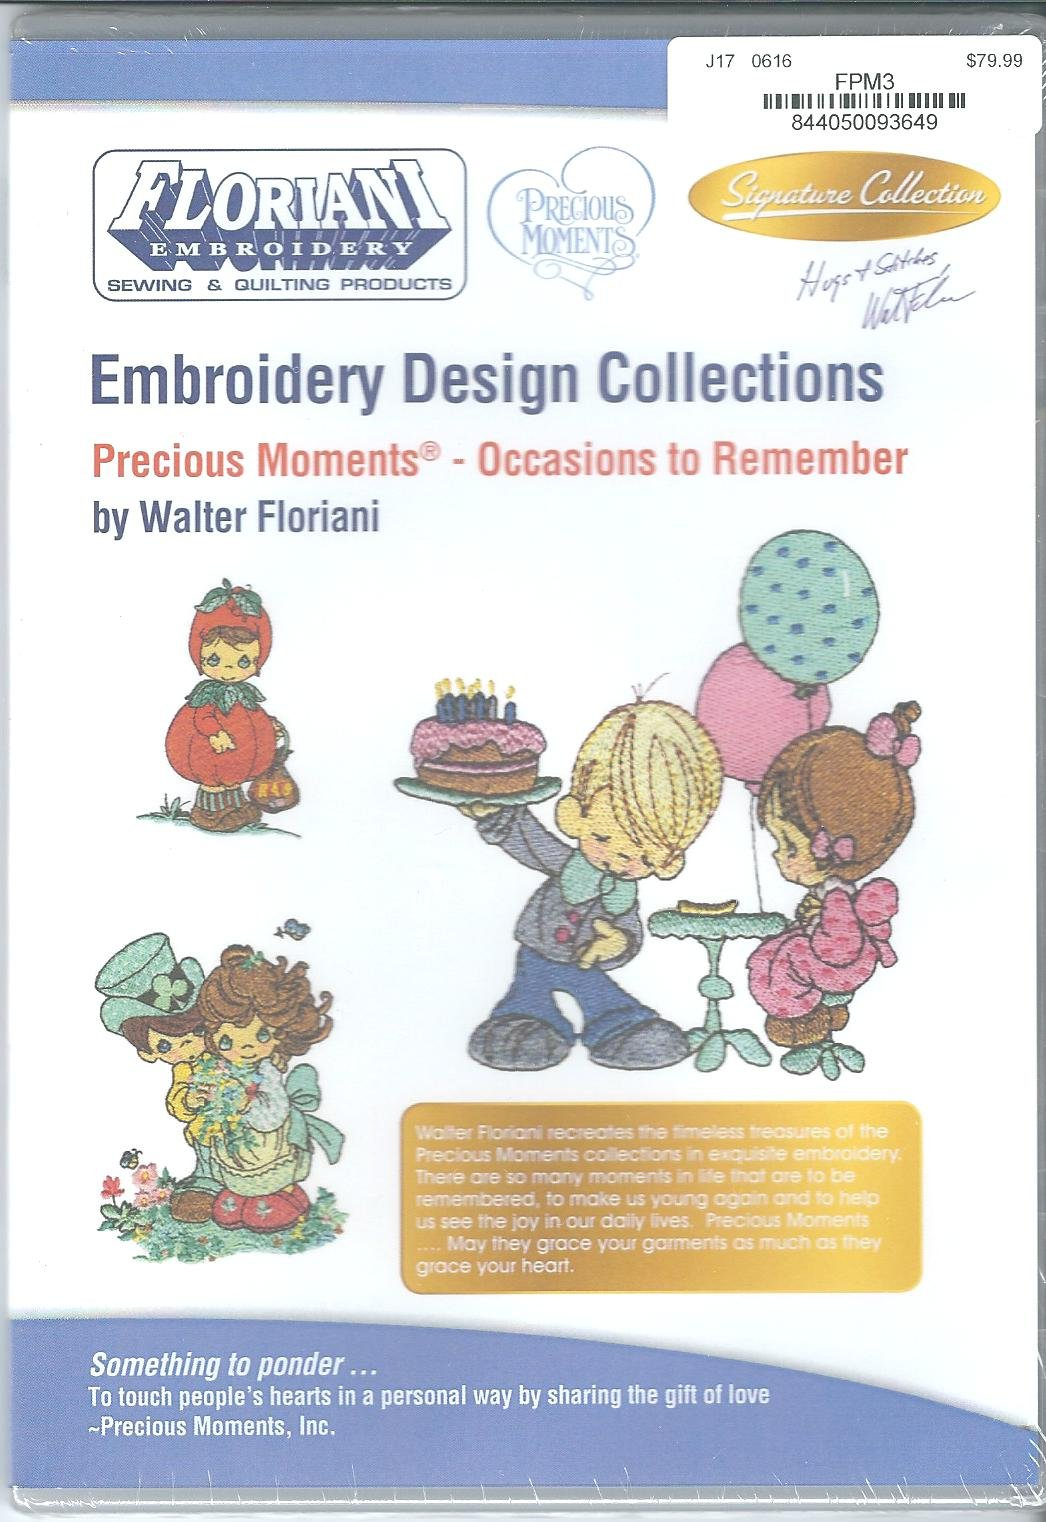 Floriani Embroidery Design Collection Precious Moments Occasions to Remember